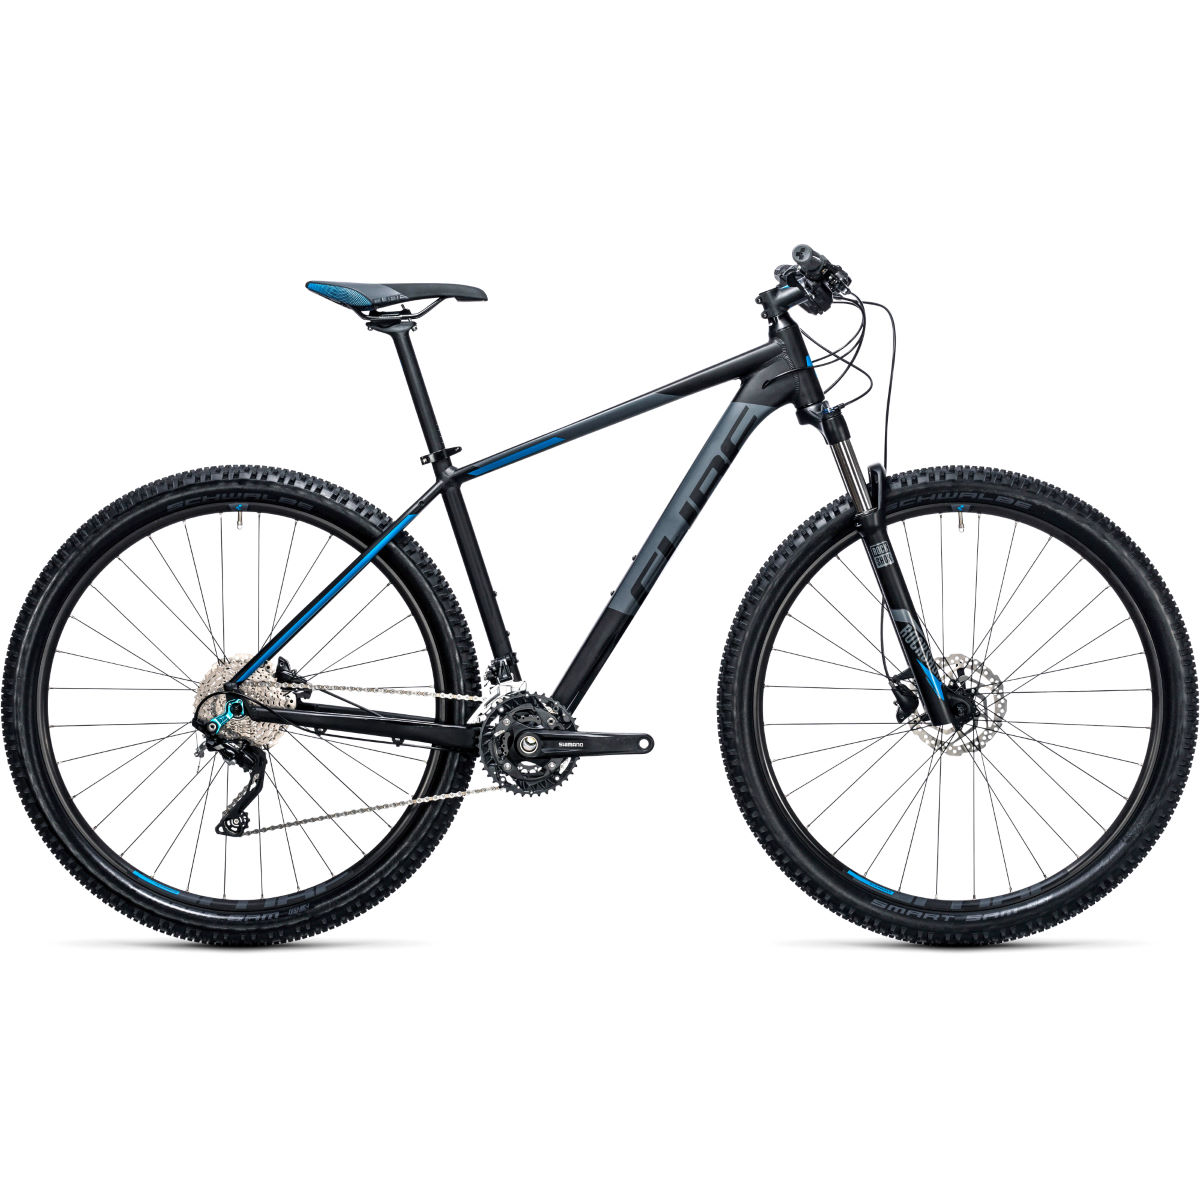 Bicicleta rígida Cube Attention 27.5 (2017) - Bicicletas MTB rígidas